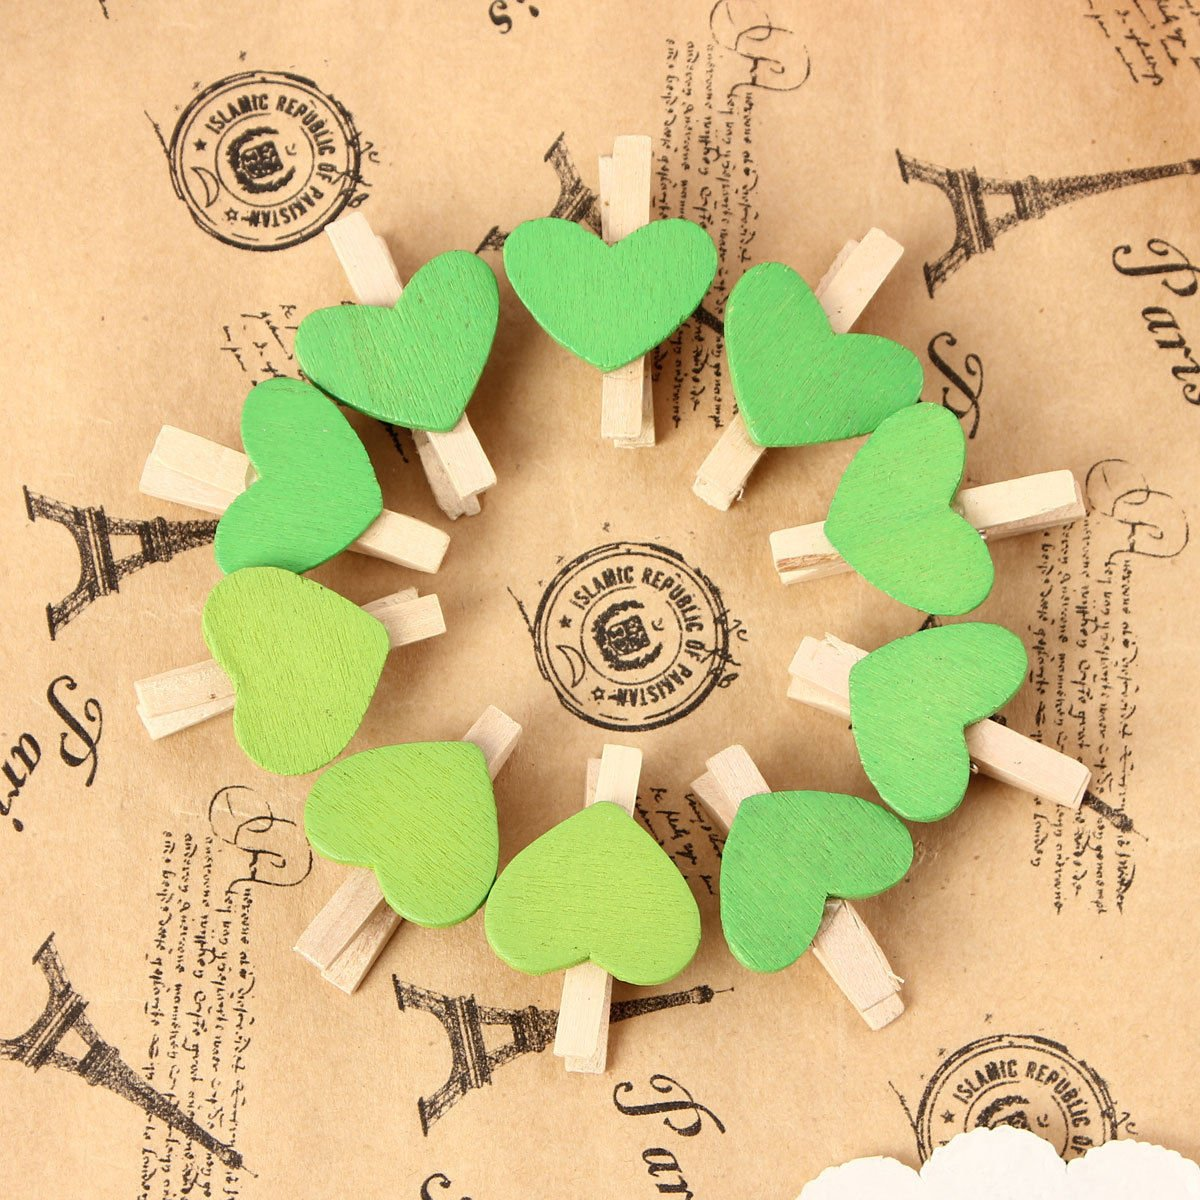 Creative Decor Craft 10Pcs Mini Wooden Heart Pegs Photo Paper Clips Wedding Decoration (Green)